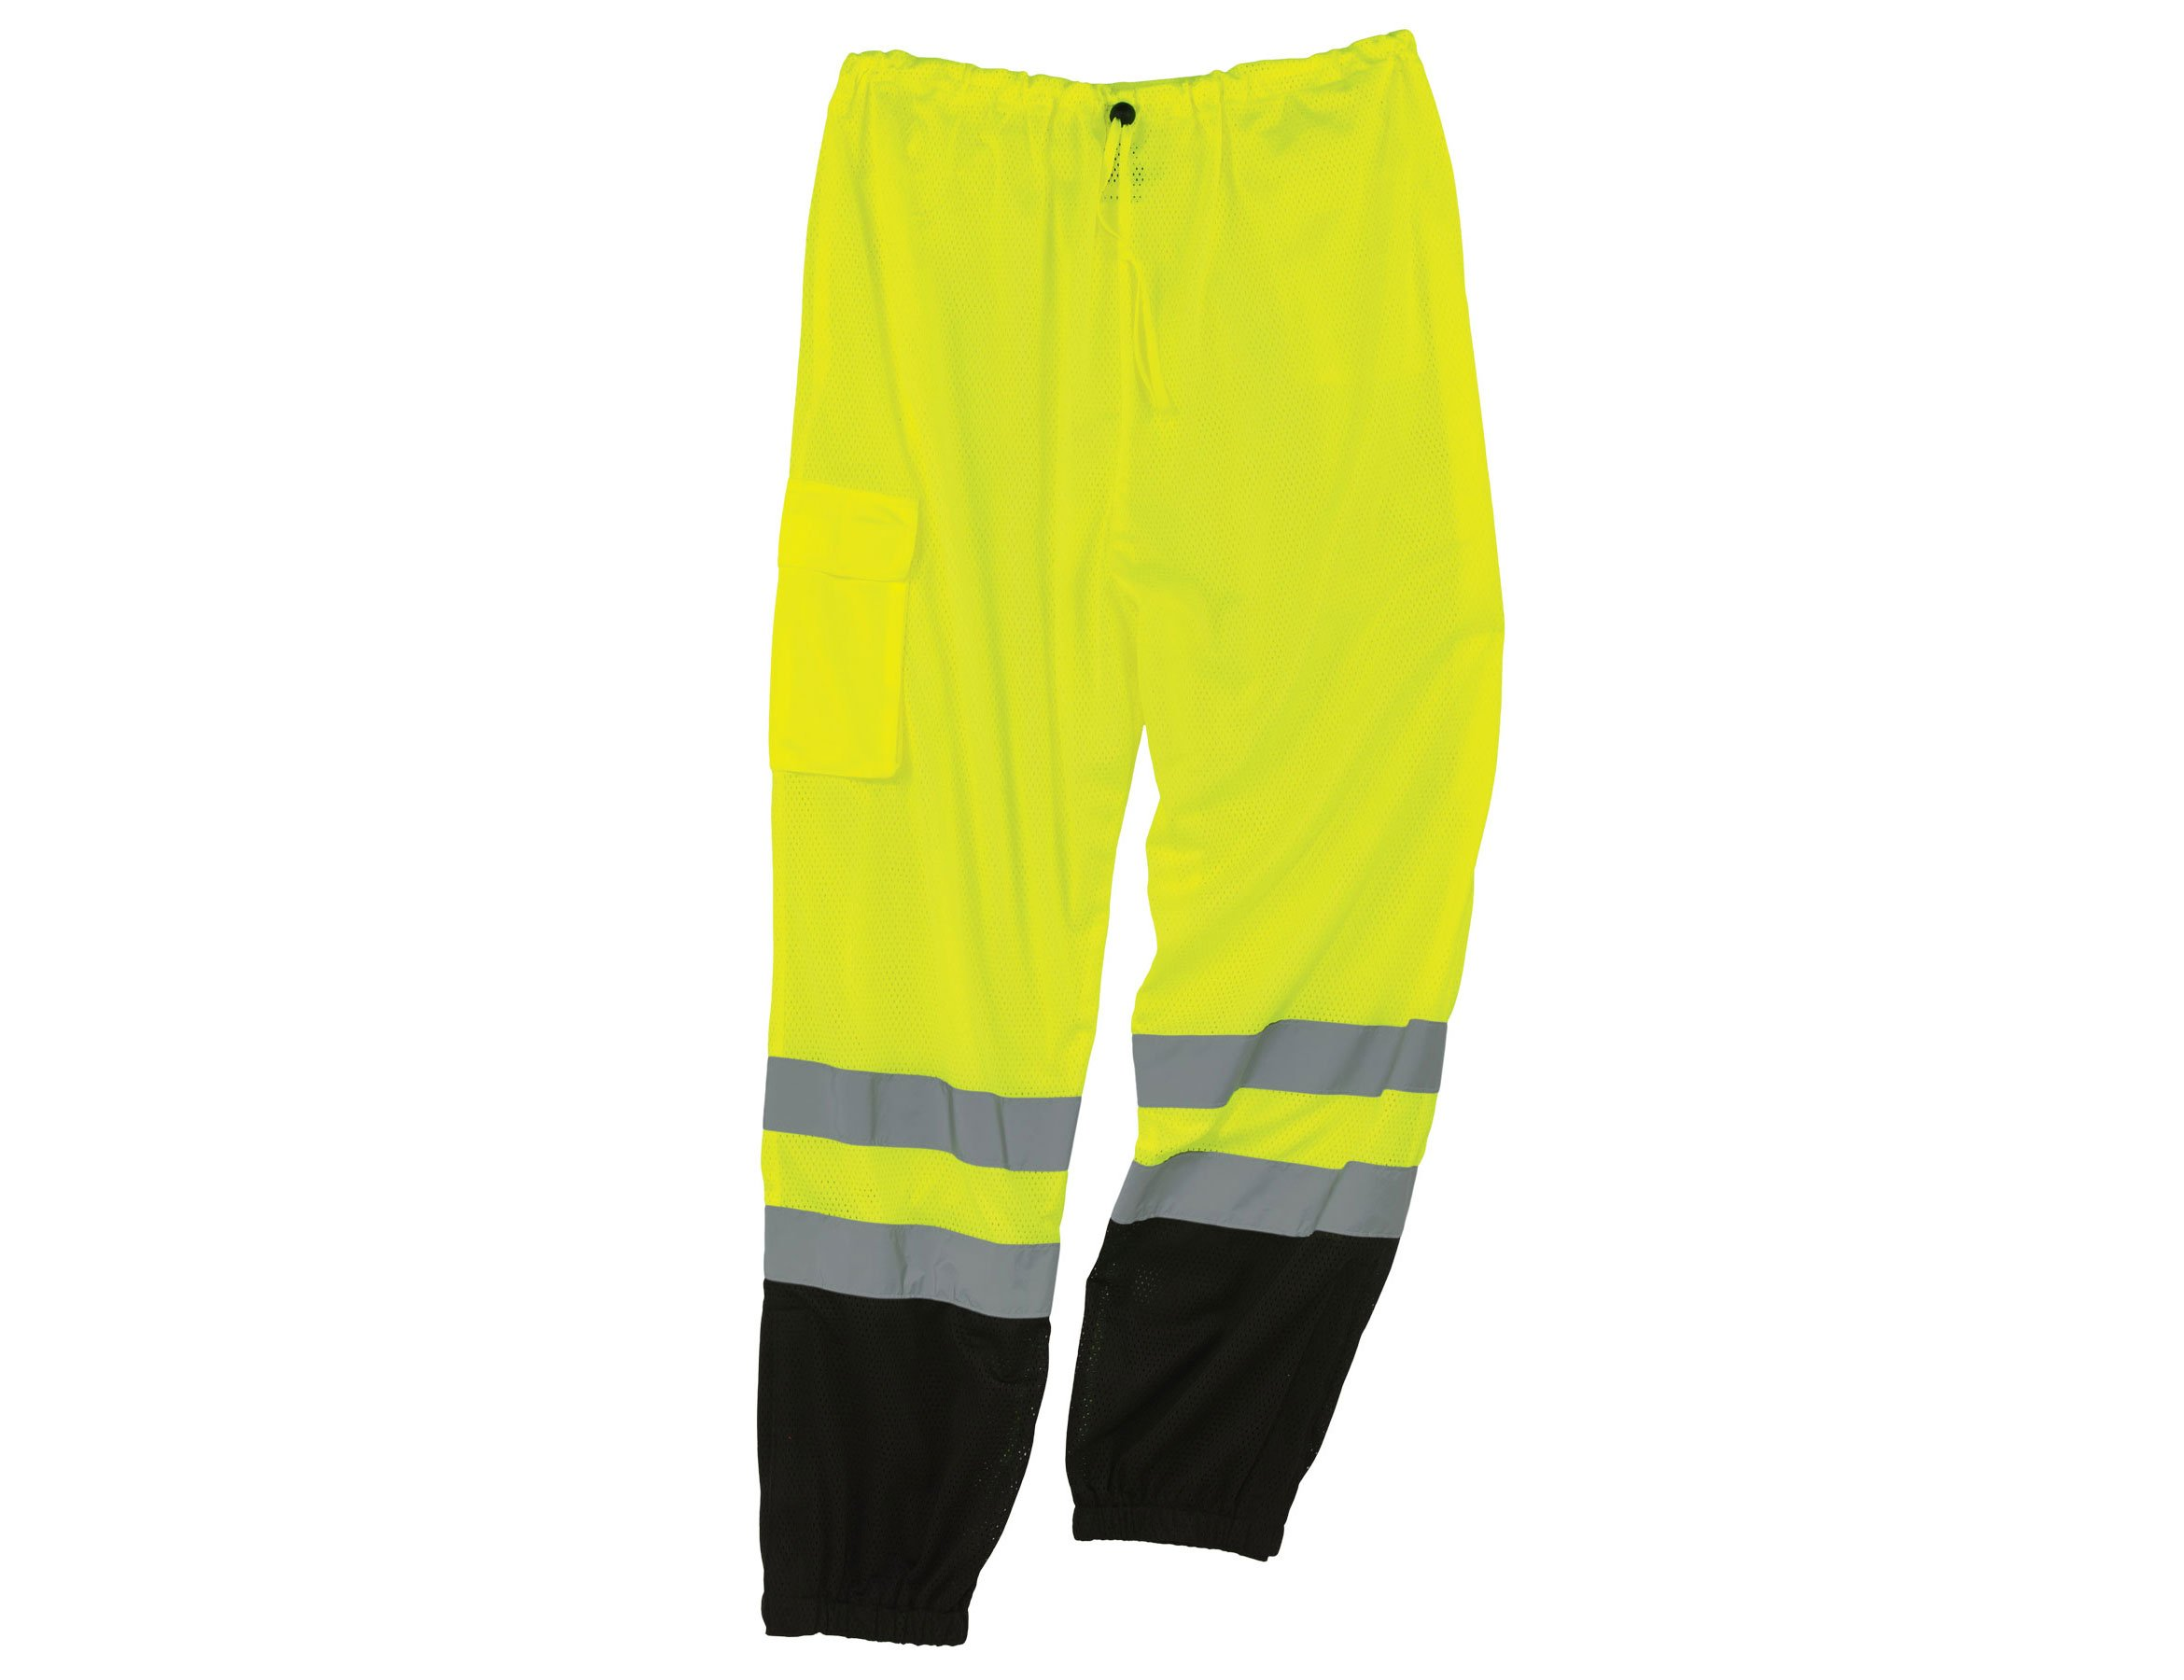 Ergodyne GloWear 8910BK ANSI Black Bottom High Visibility Lime Mesh Reflective Safety Pants, Large/X-Large